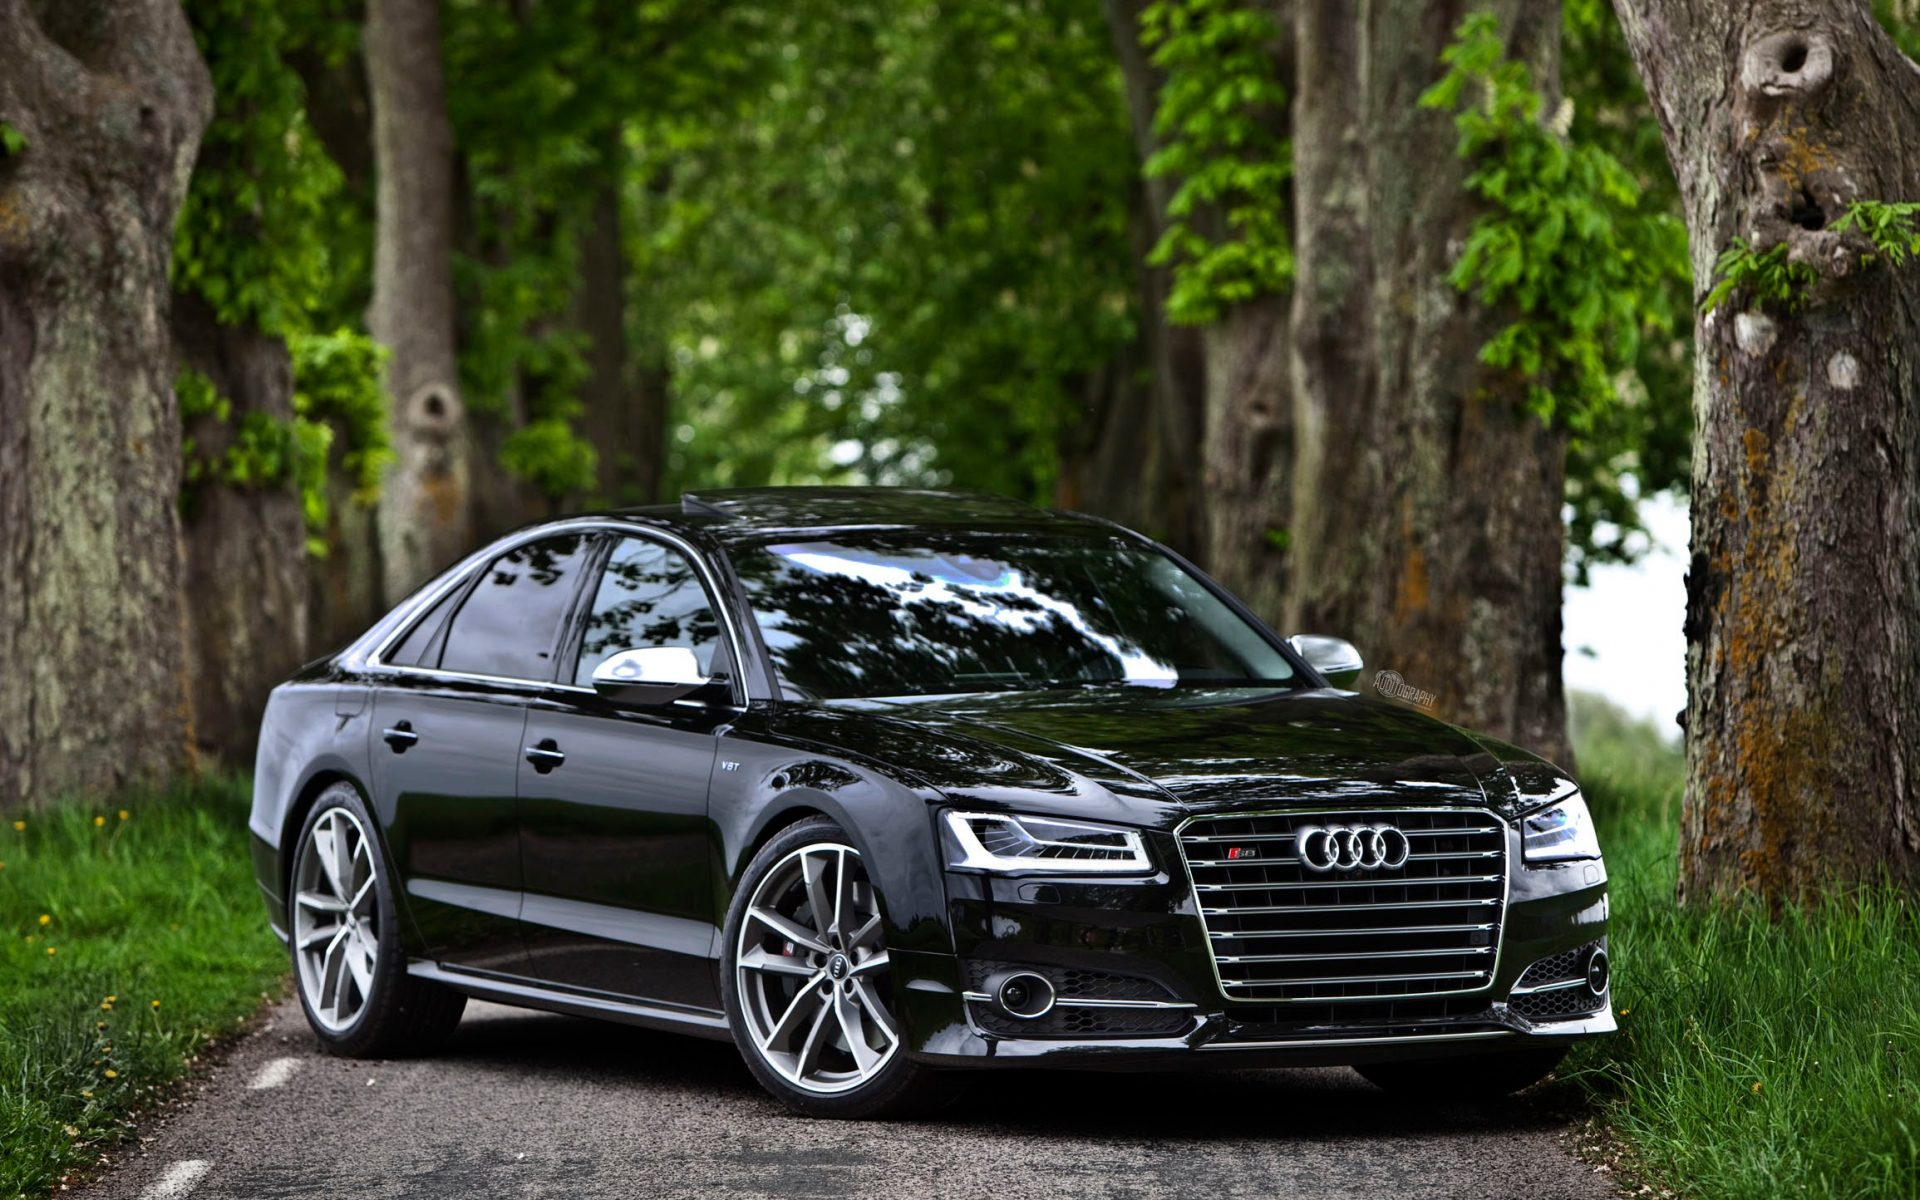 File Audi S8 Wallpapers D825YX5jpg WallpapersExpertcom 1920x1200